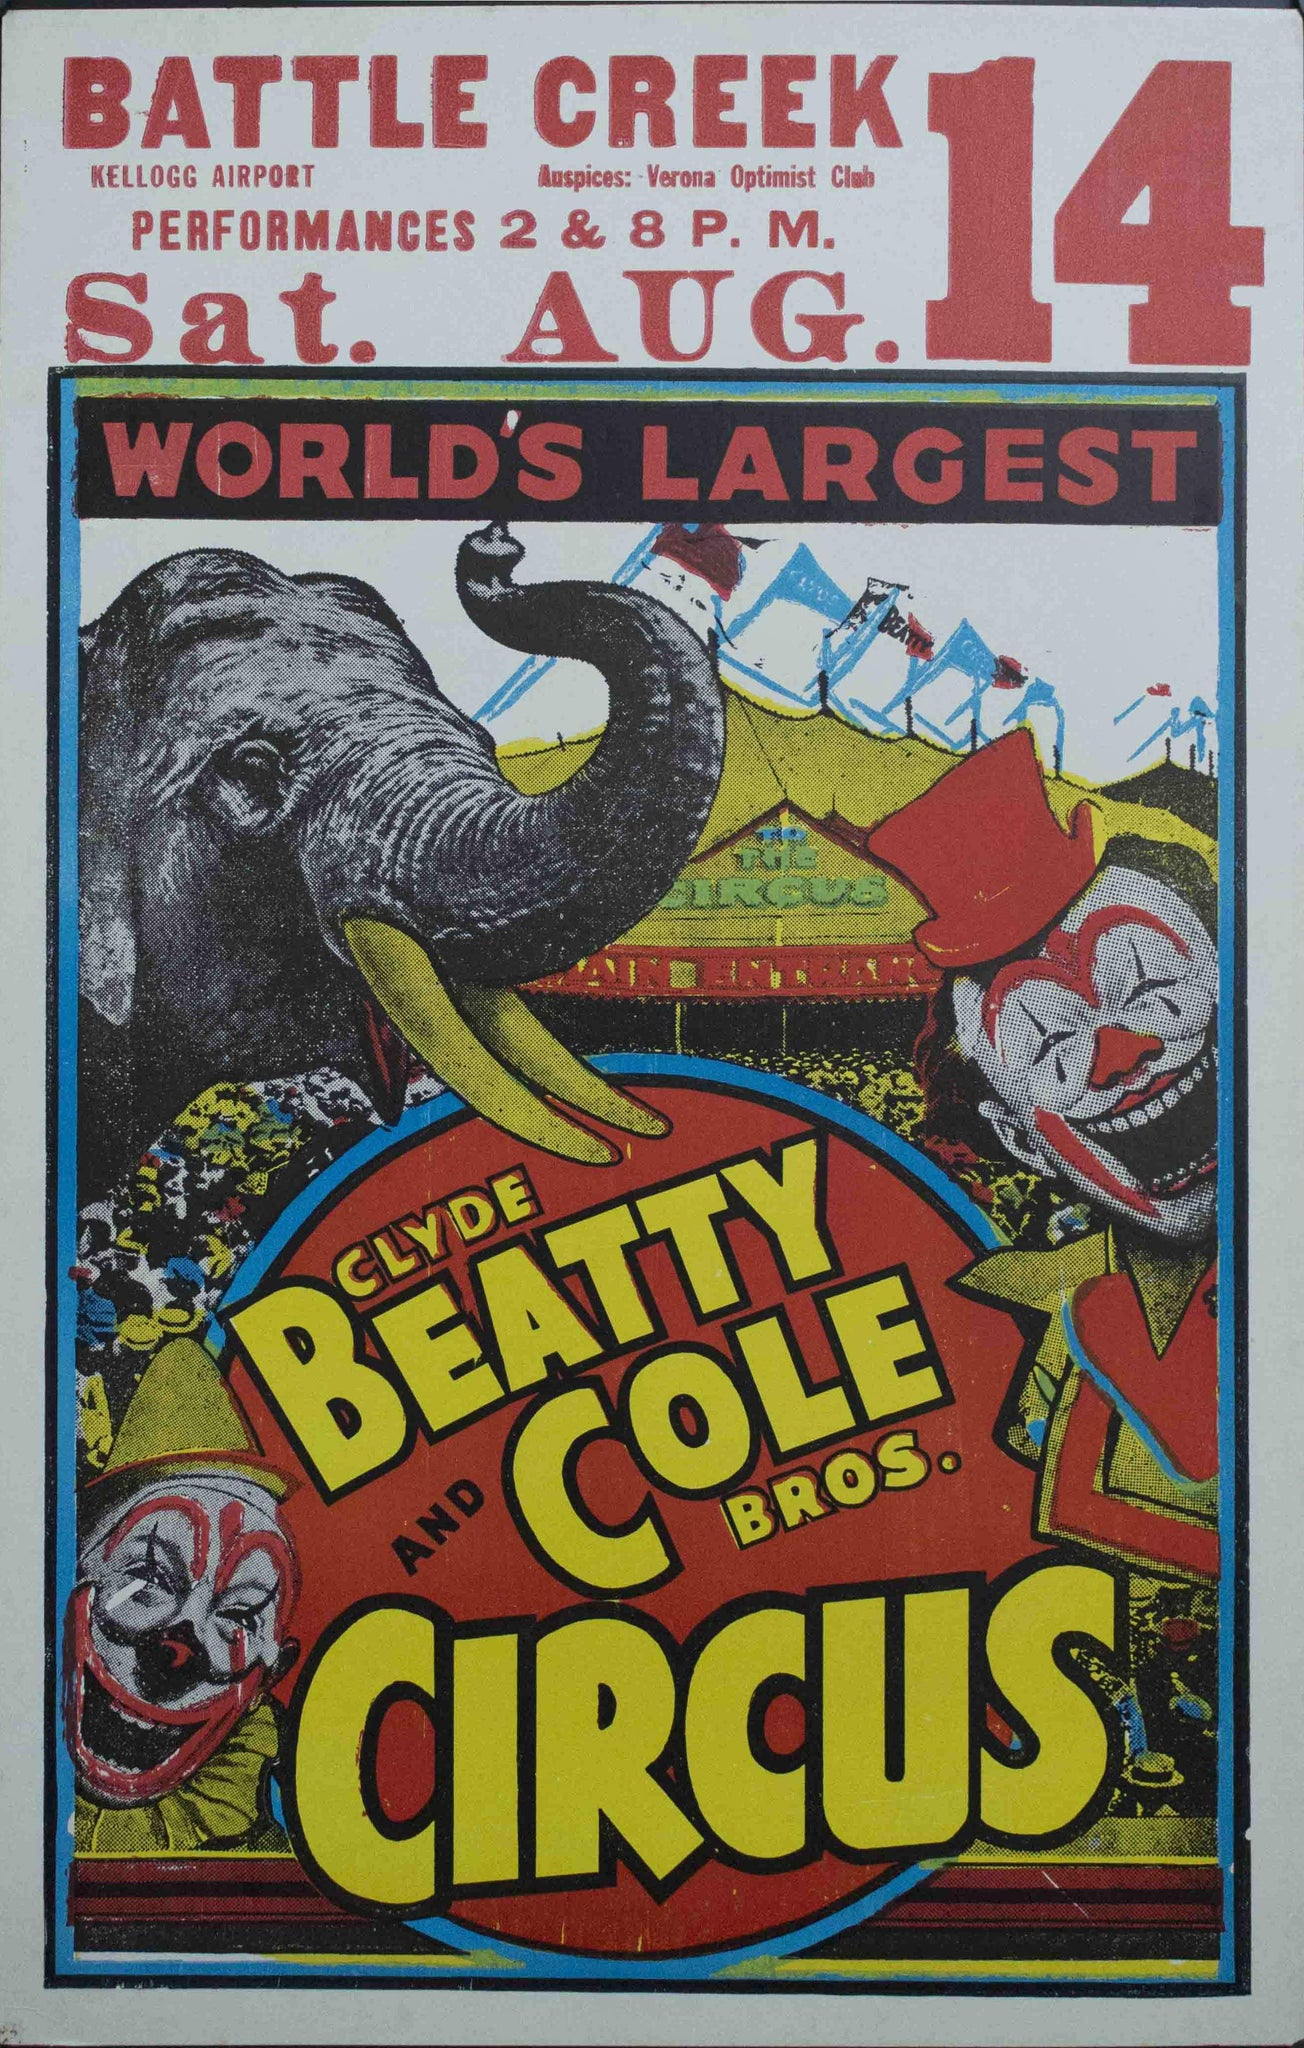 c. 1950 Clyde Beatty and Cole Bros Circus | World's Largest | Battle Creek Kellogg Airport